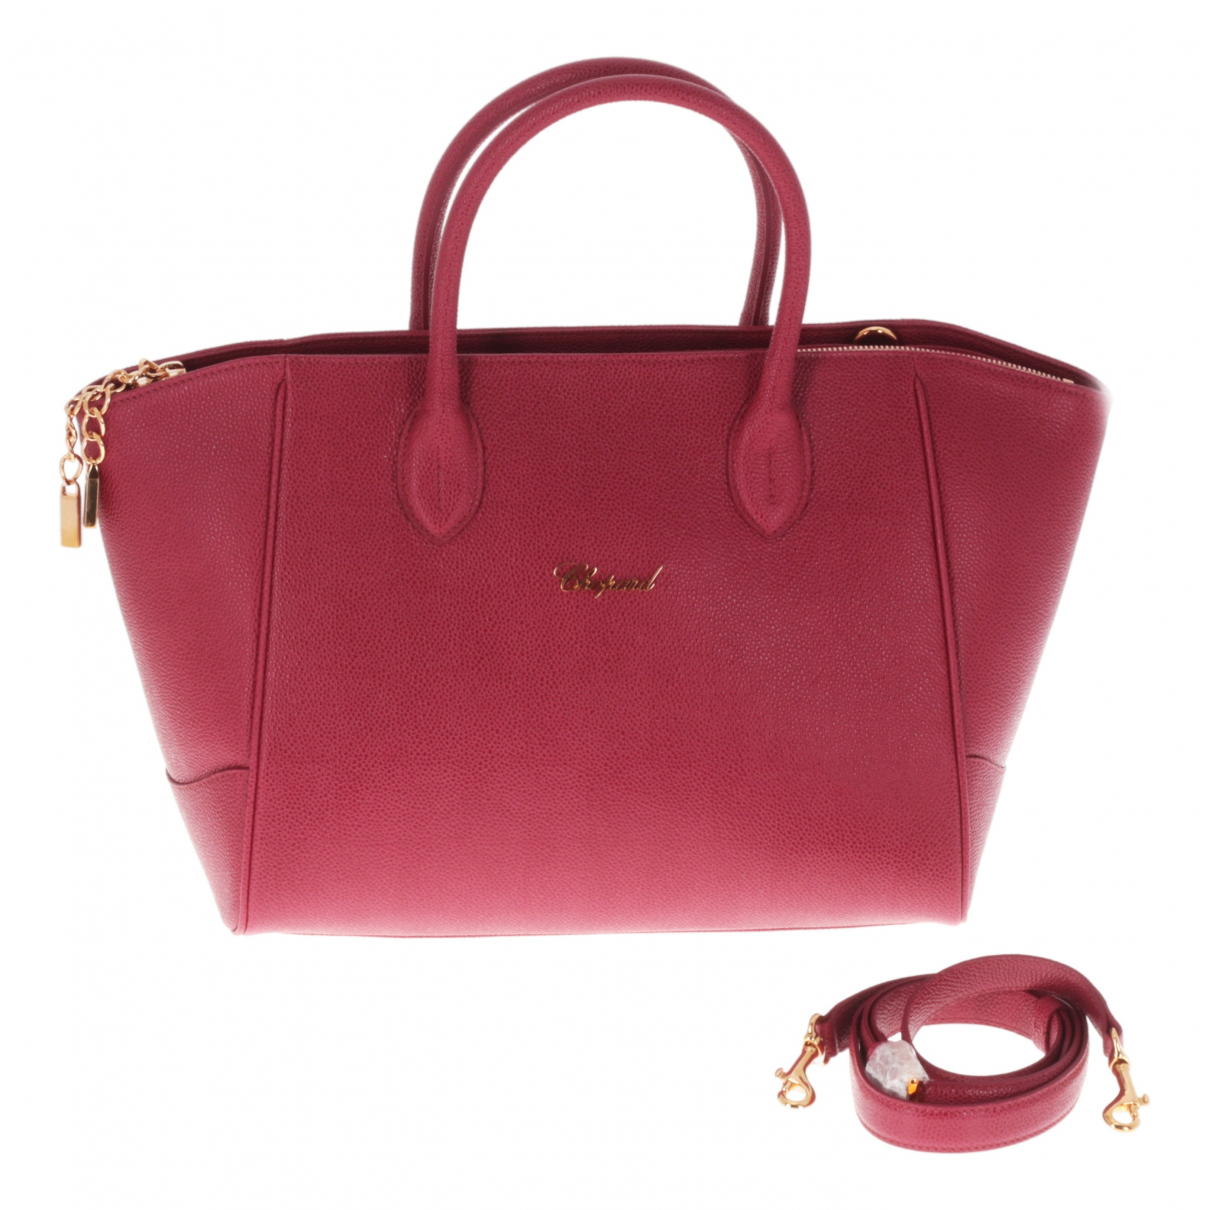 Chopard N Burgundy Leather handbag for Women N